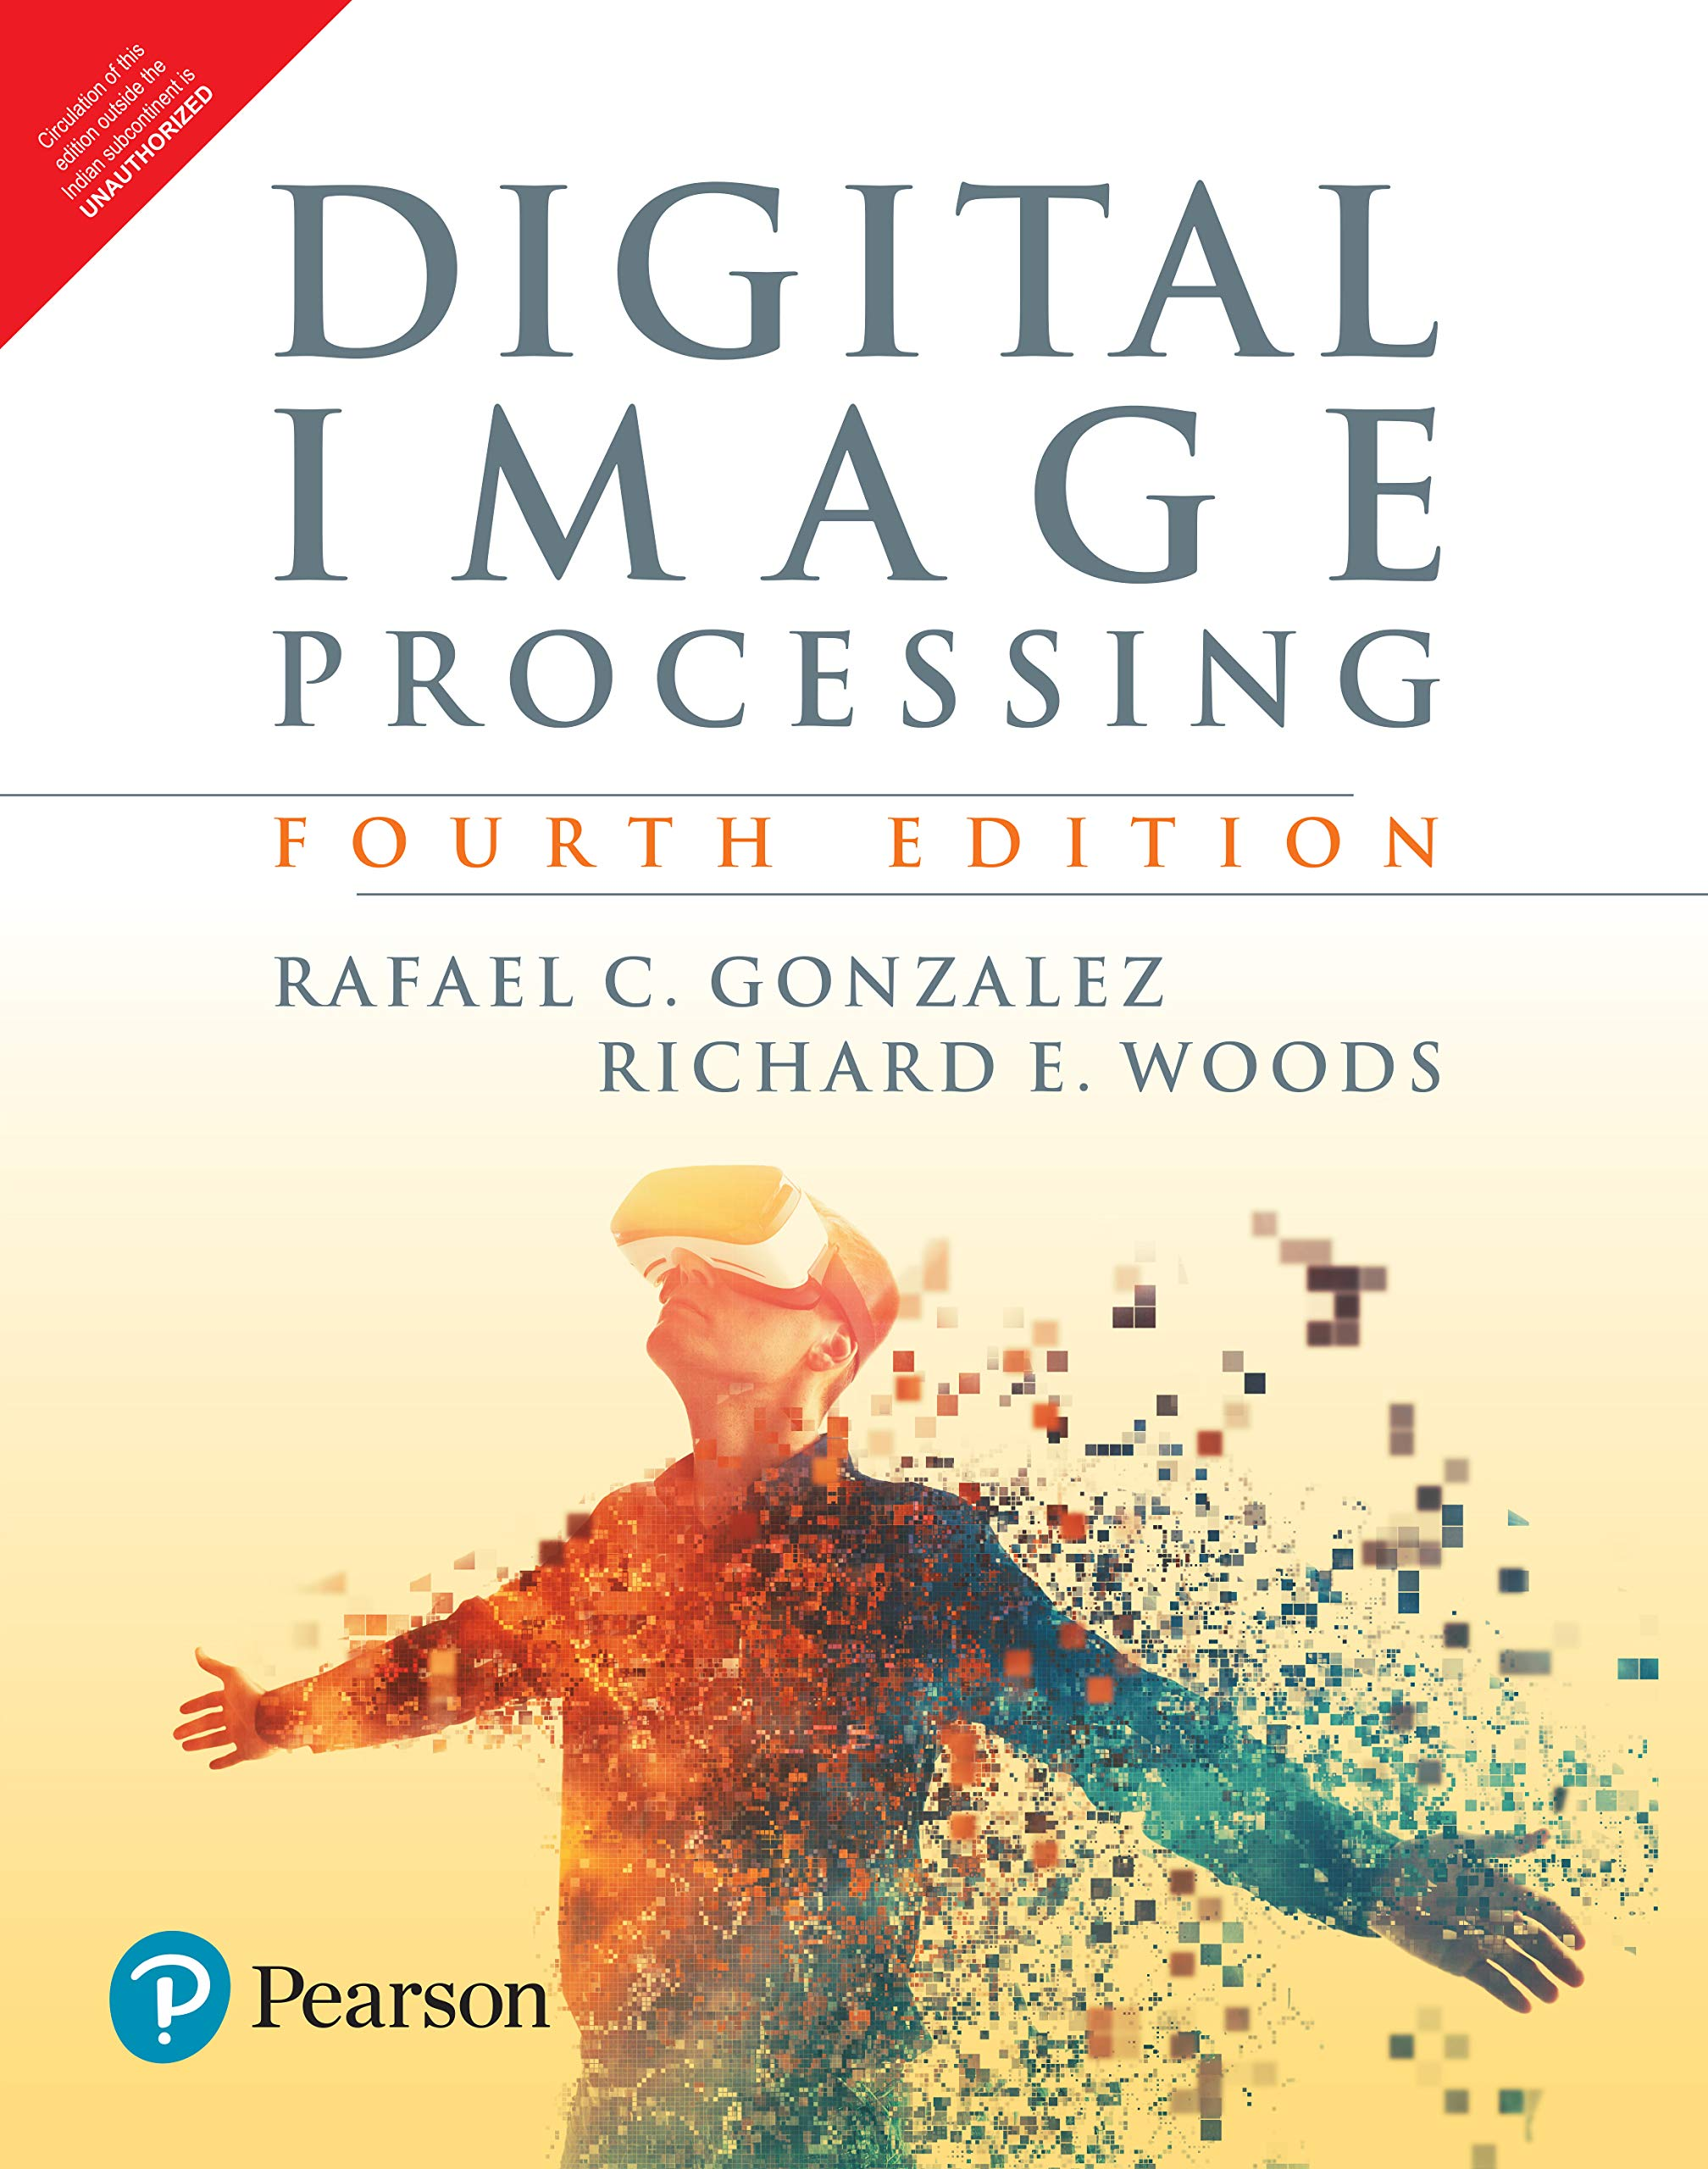 Digital Image Processing | Fourth Edition | By Pearson